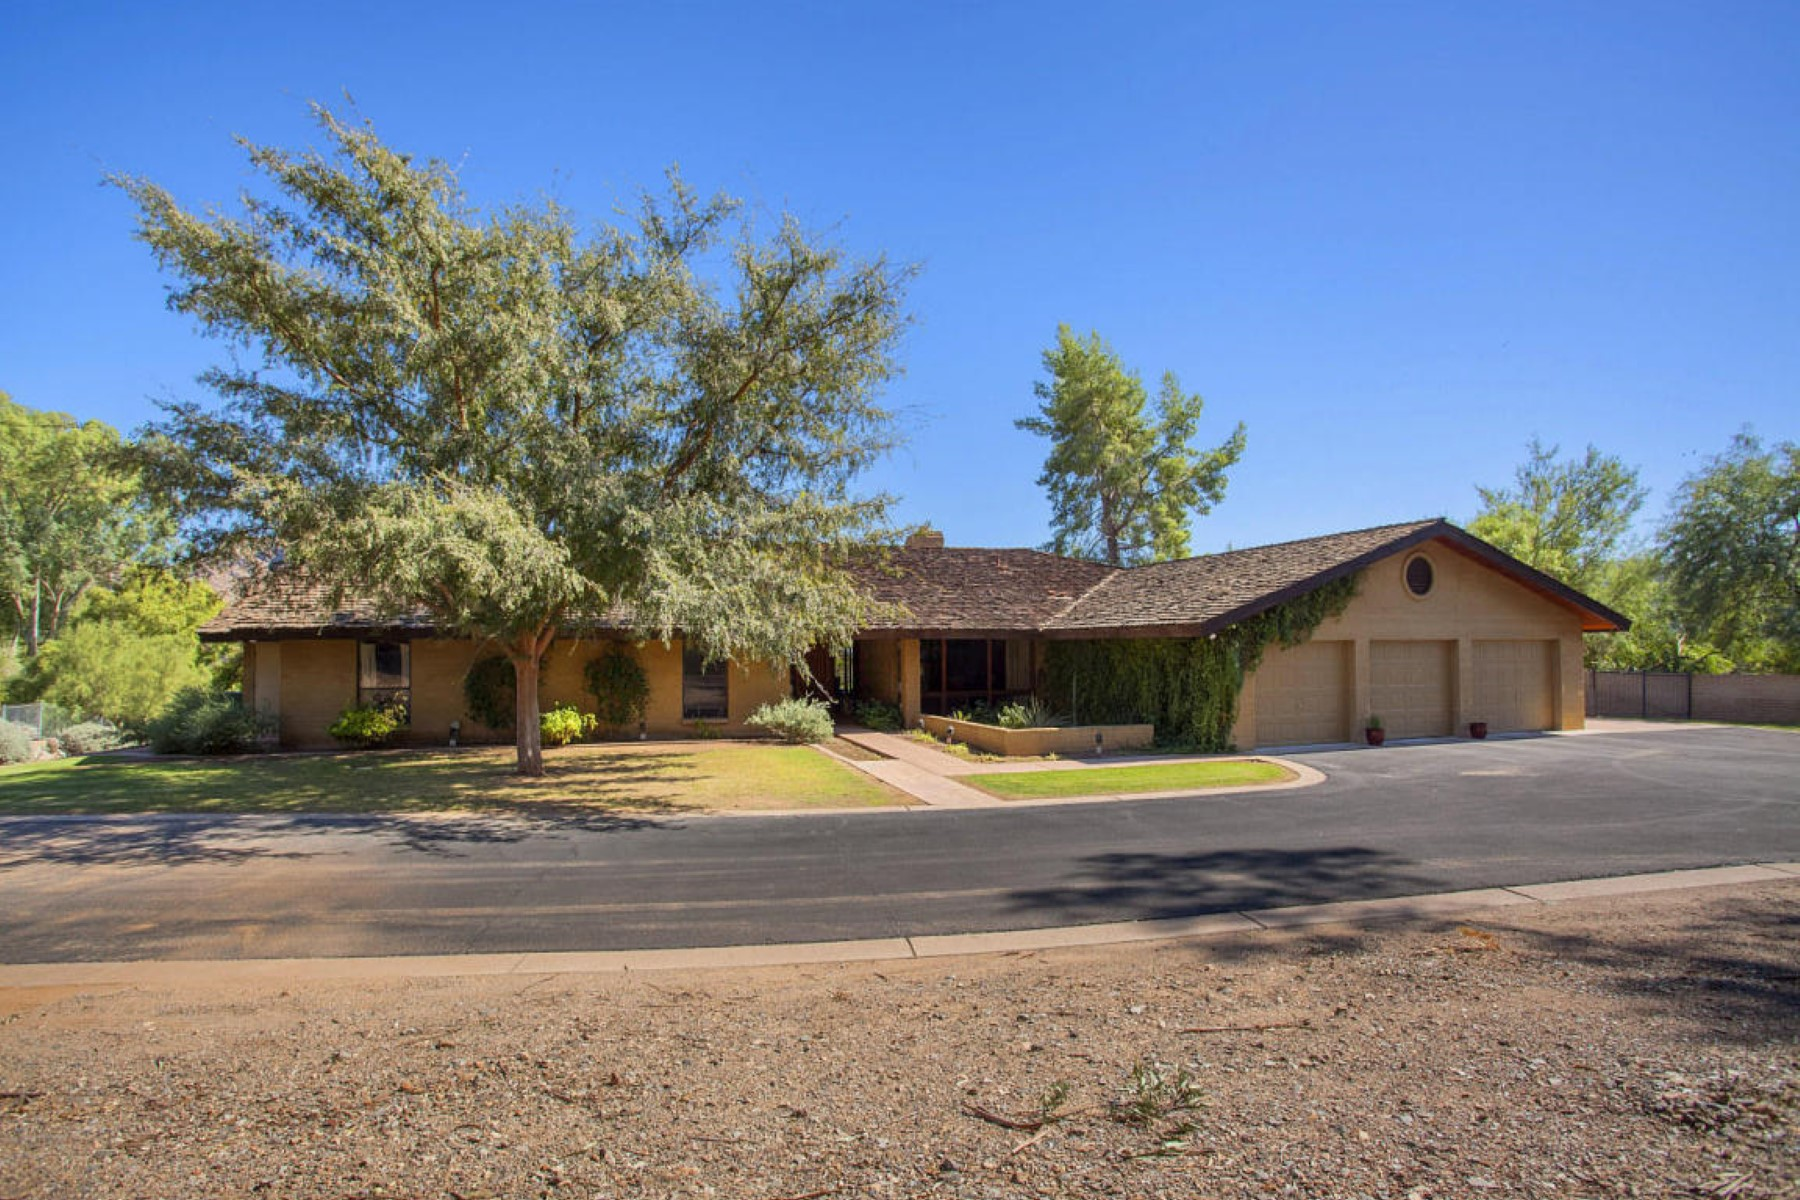 Vivienda unifamiliar por un Venta en Very Secluded Paradise Valley Home With Outstanding Views 7110 N 46th Street Paradise Valley, Arizona 85253 Estados Unidos